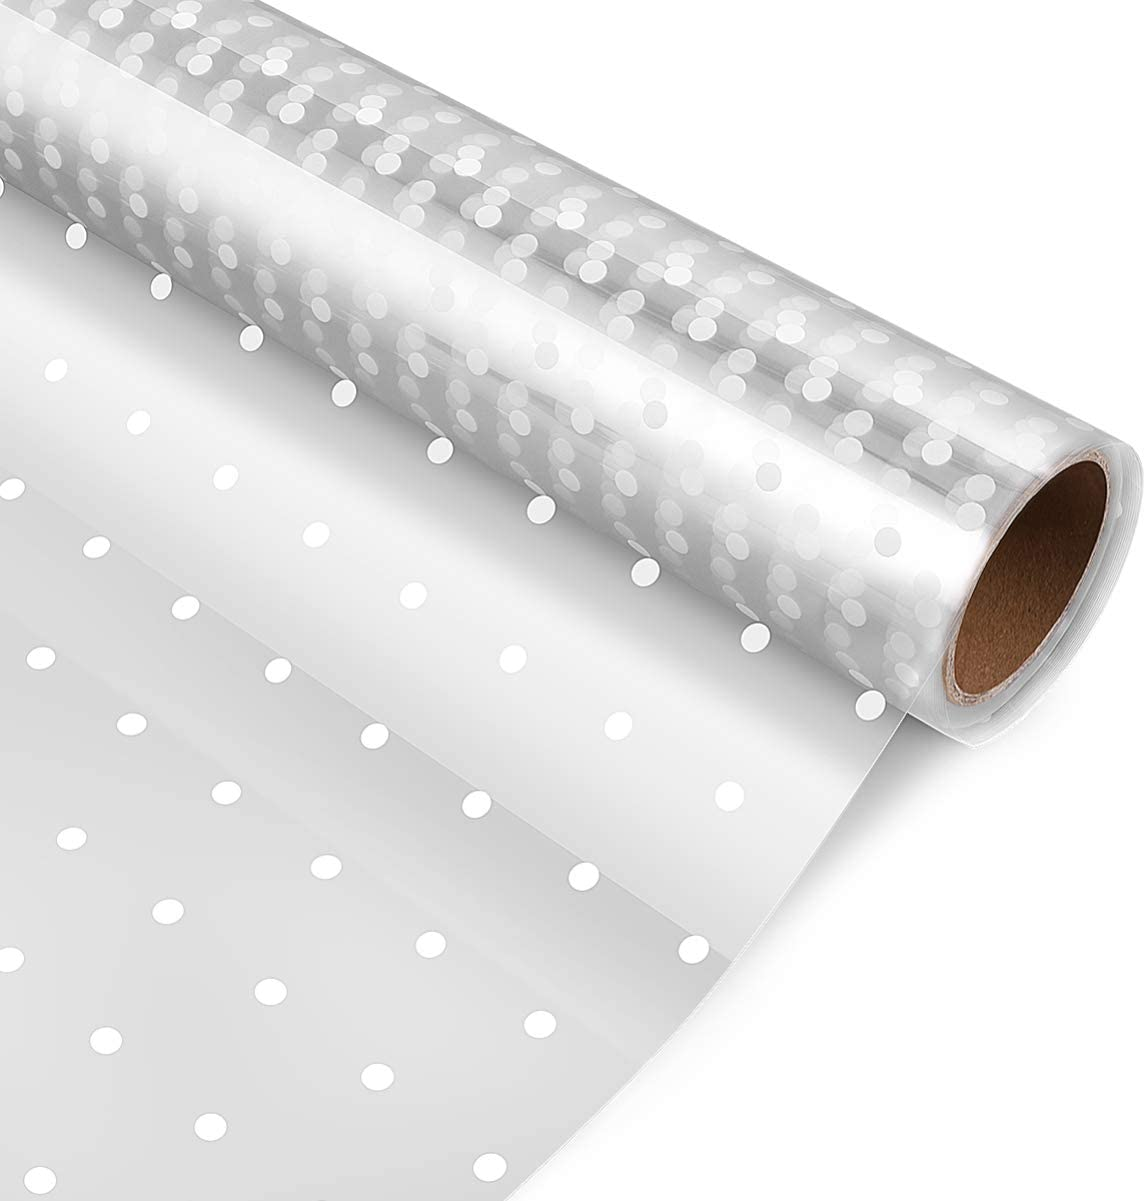 STOBOK Cellophane Wrap Roll,White Dot Florist Paper Wrapper 15.7 inch x100 Ft Crystal Long Film Gift Wrappings Packing Paper for Flowers Craft Basket Bouquet Fruit Food